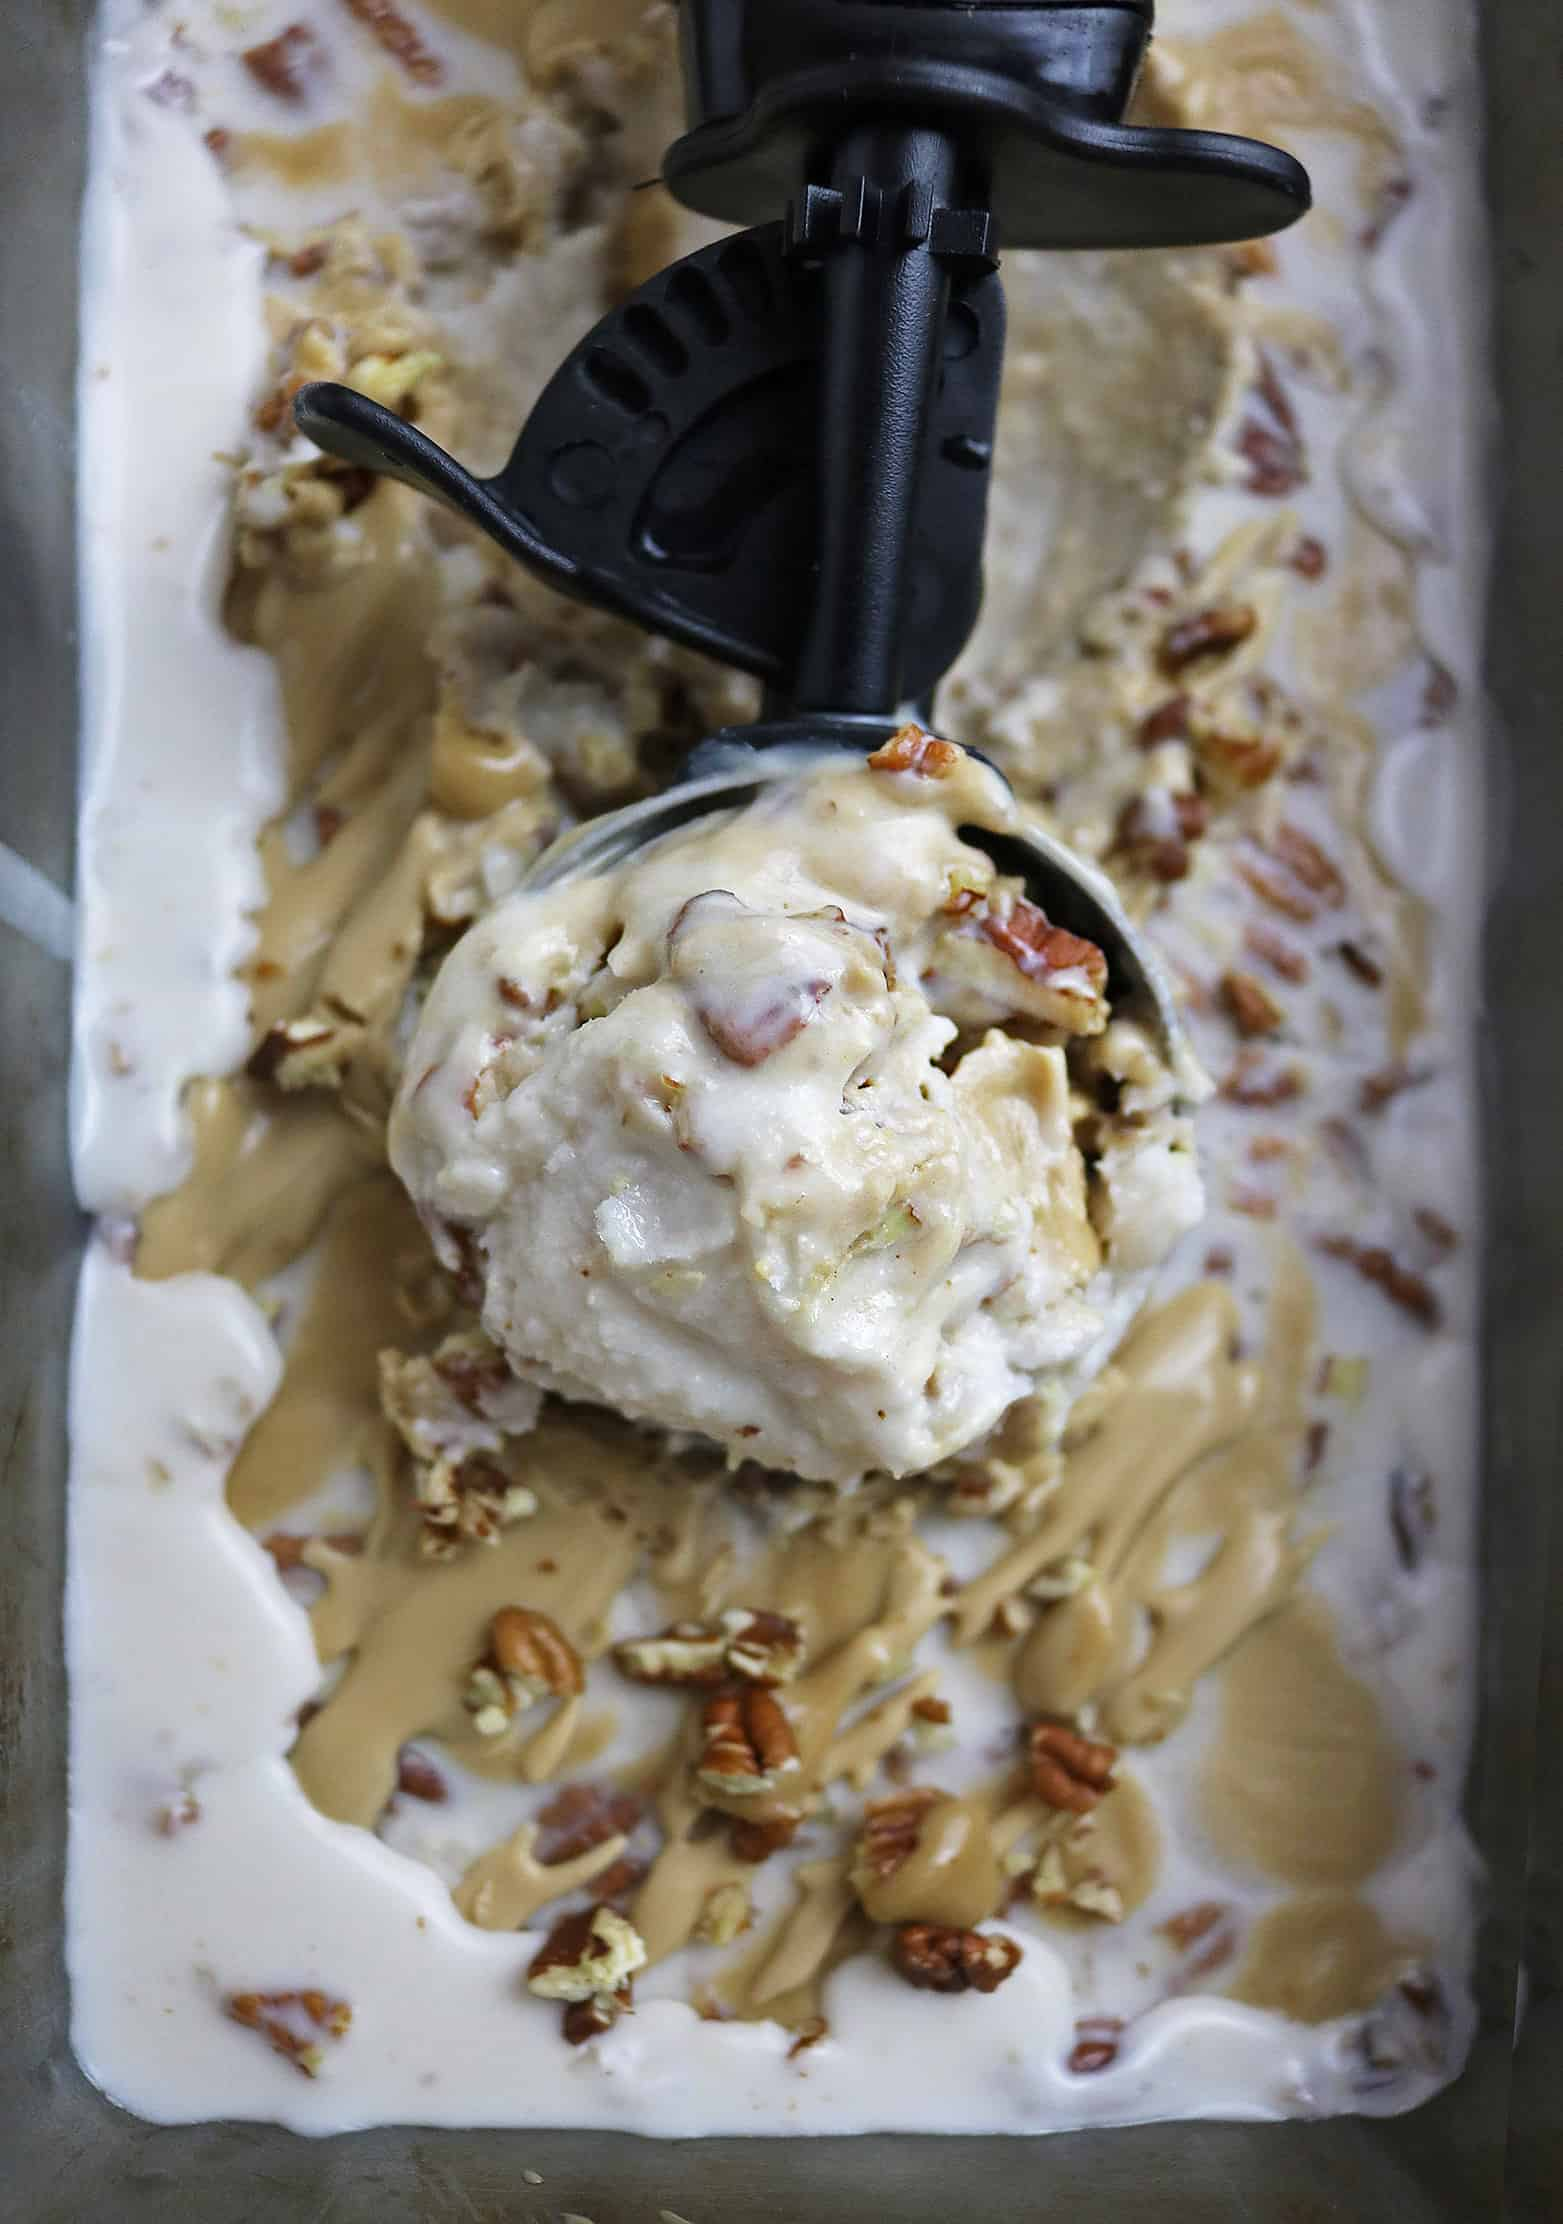 Caramel Brandy Ice Cream